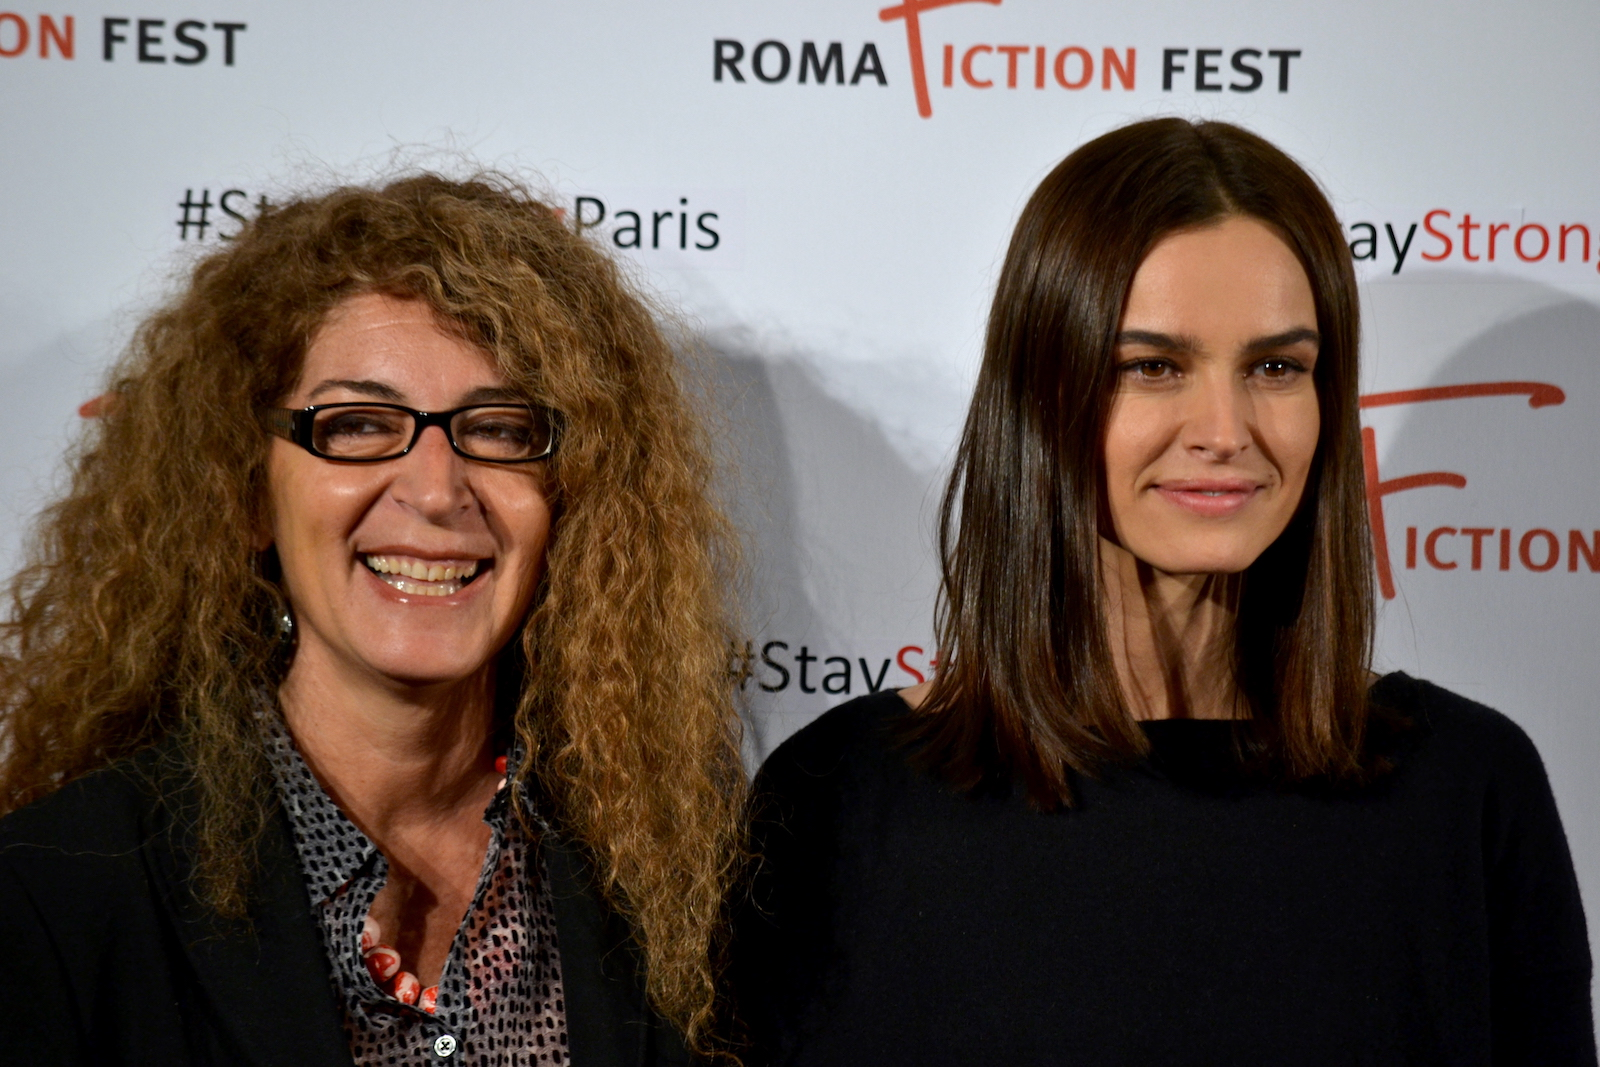 Roma Fiction Fest 2015: Melania Mazzucco e Kasia Smutniak al photocall di Limbo